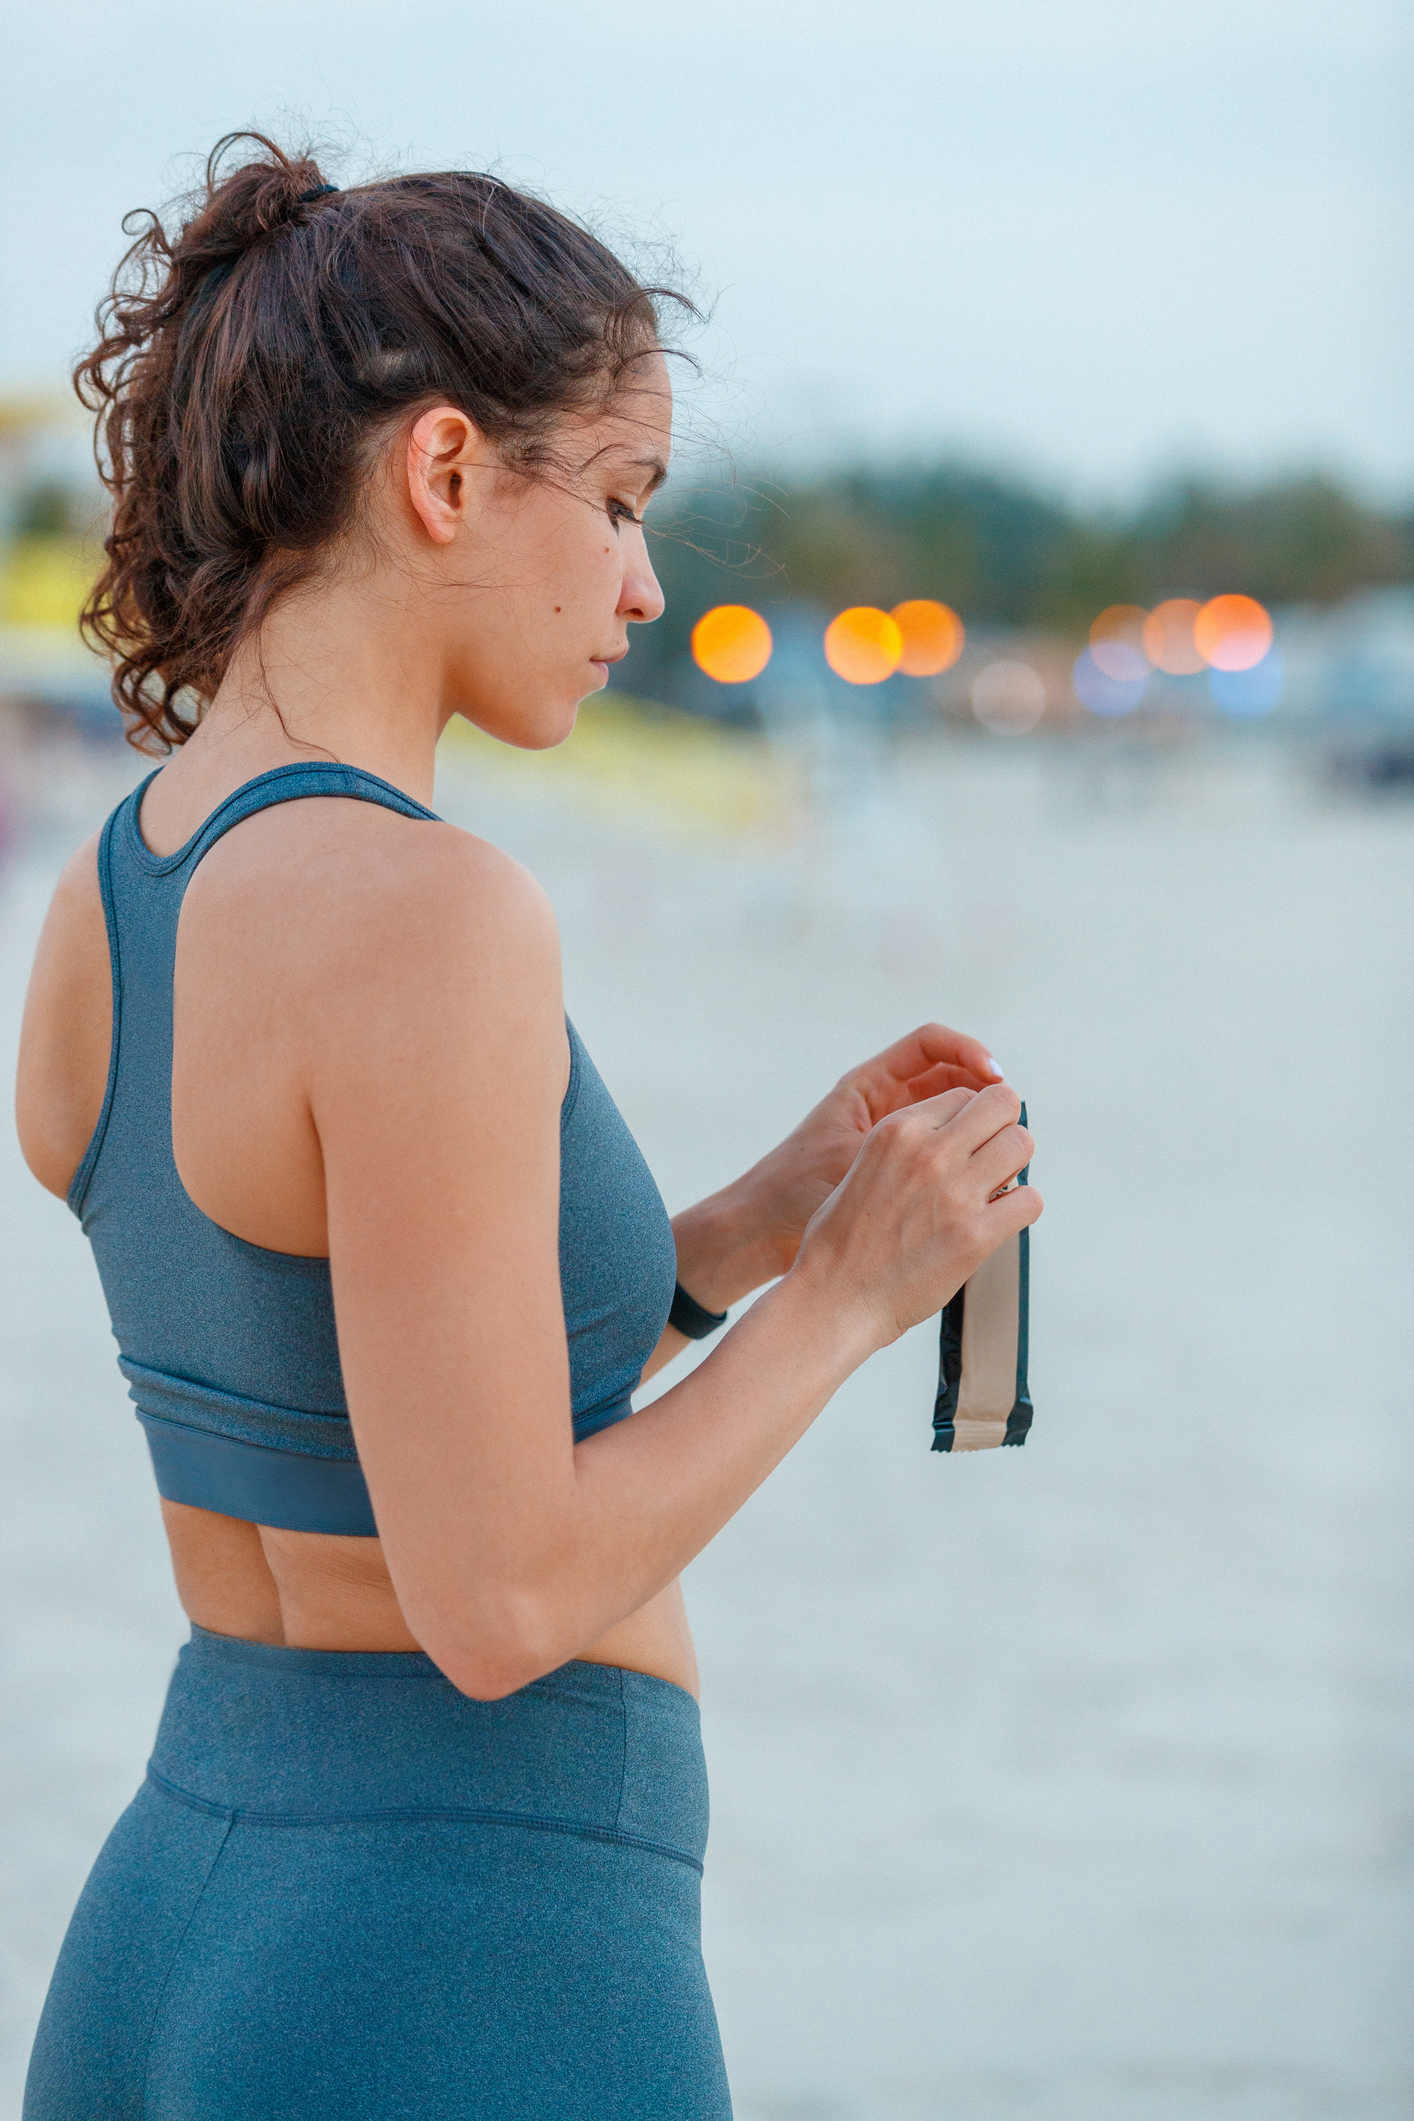 Female jogger opening a protein bar